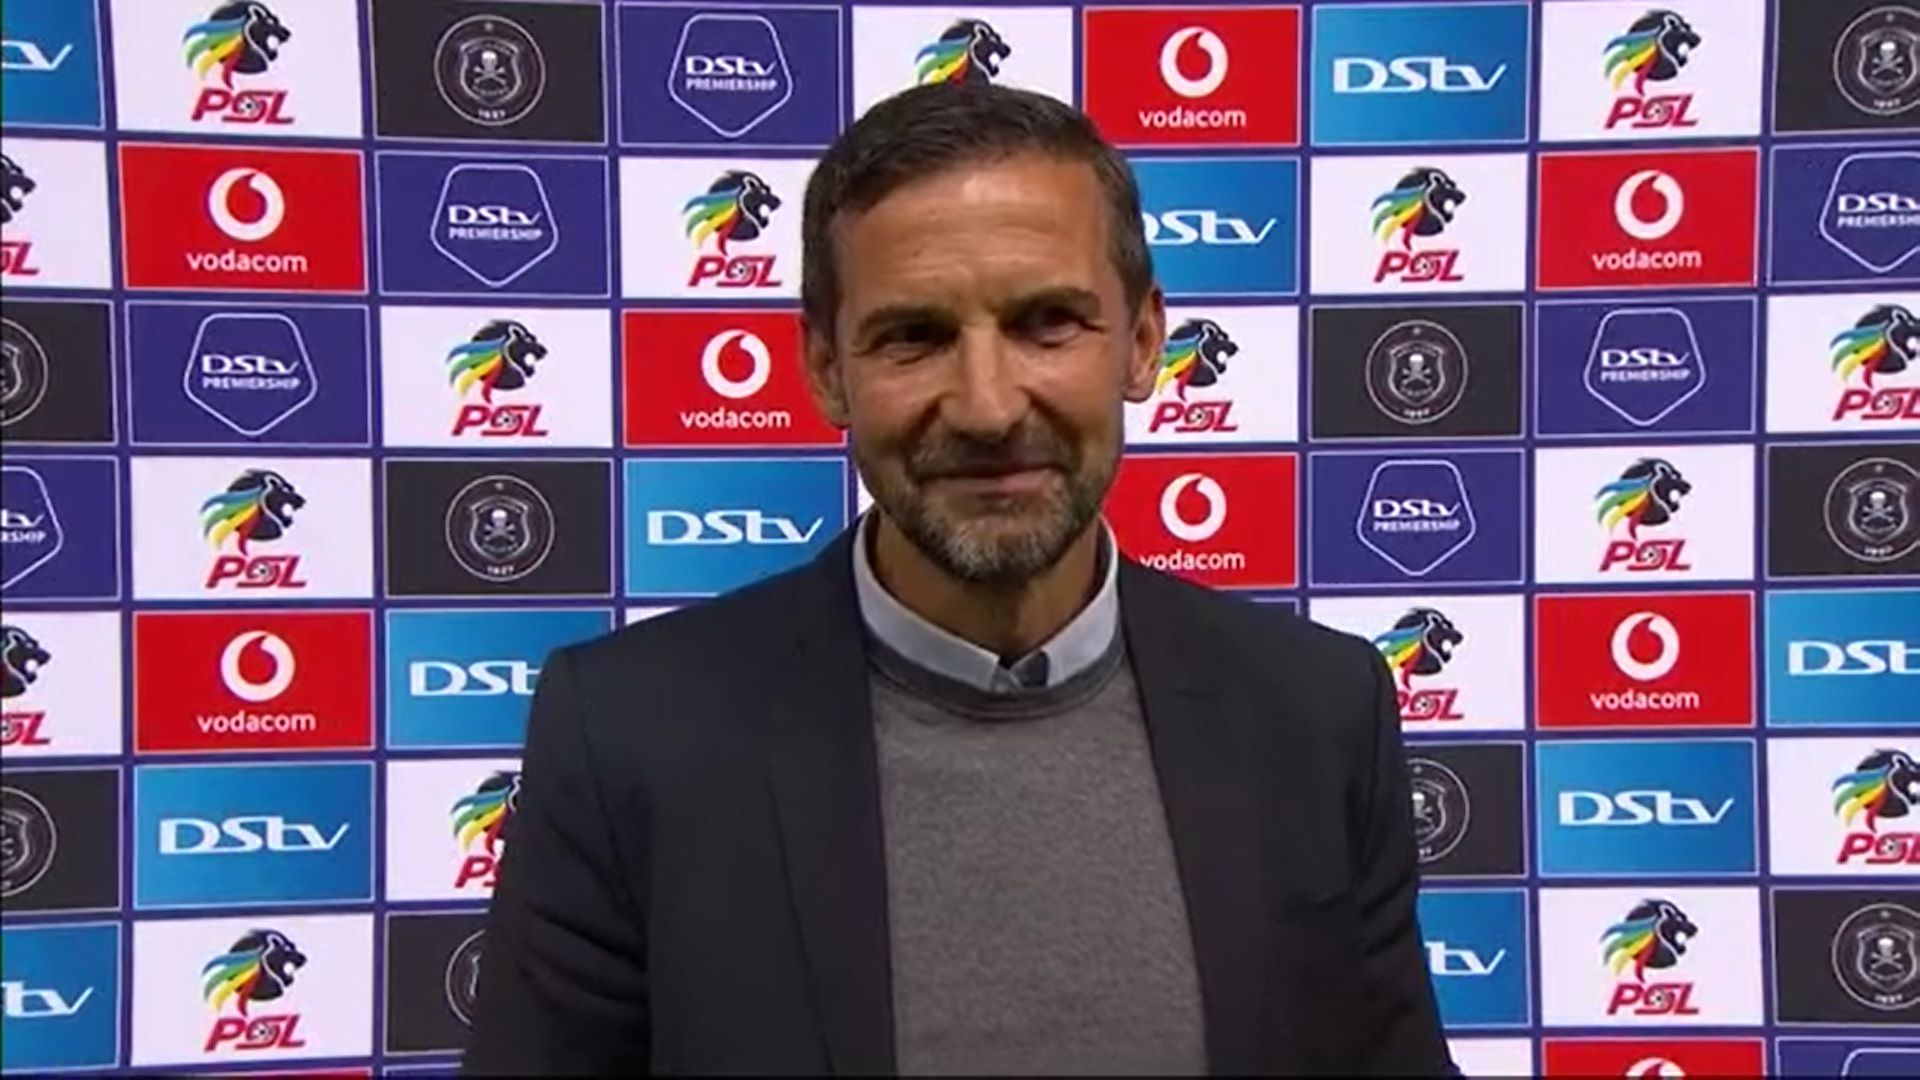 DStv Premiership | Orlando Pirates v Stellenbosch FC | Post-match interview with Josef Zinnbauer